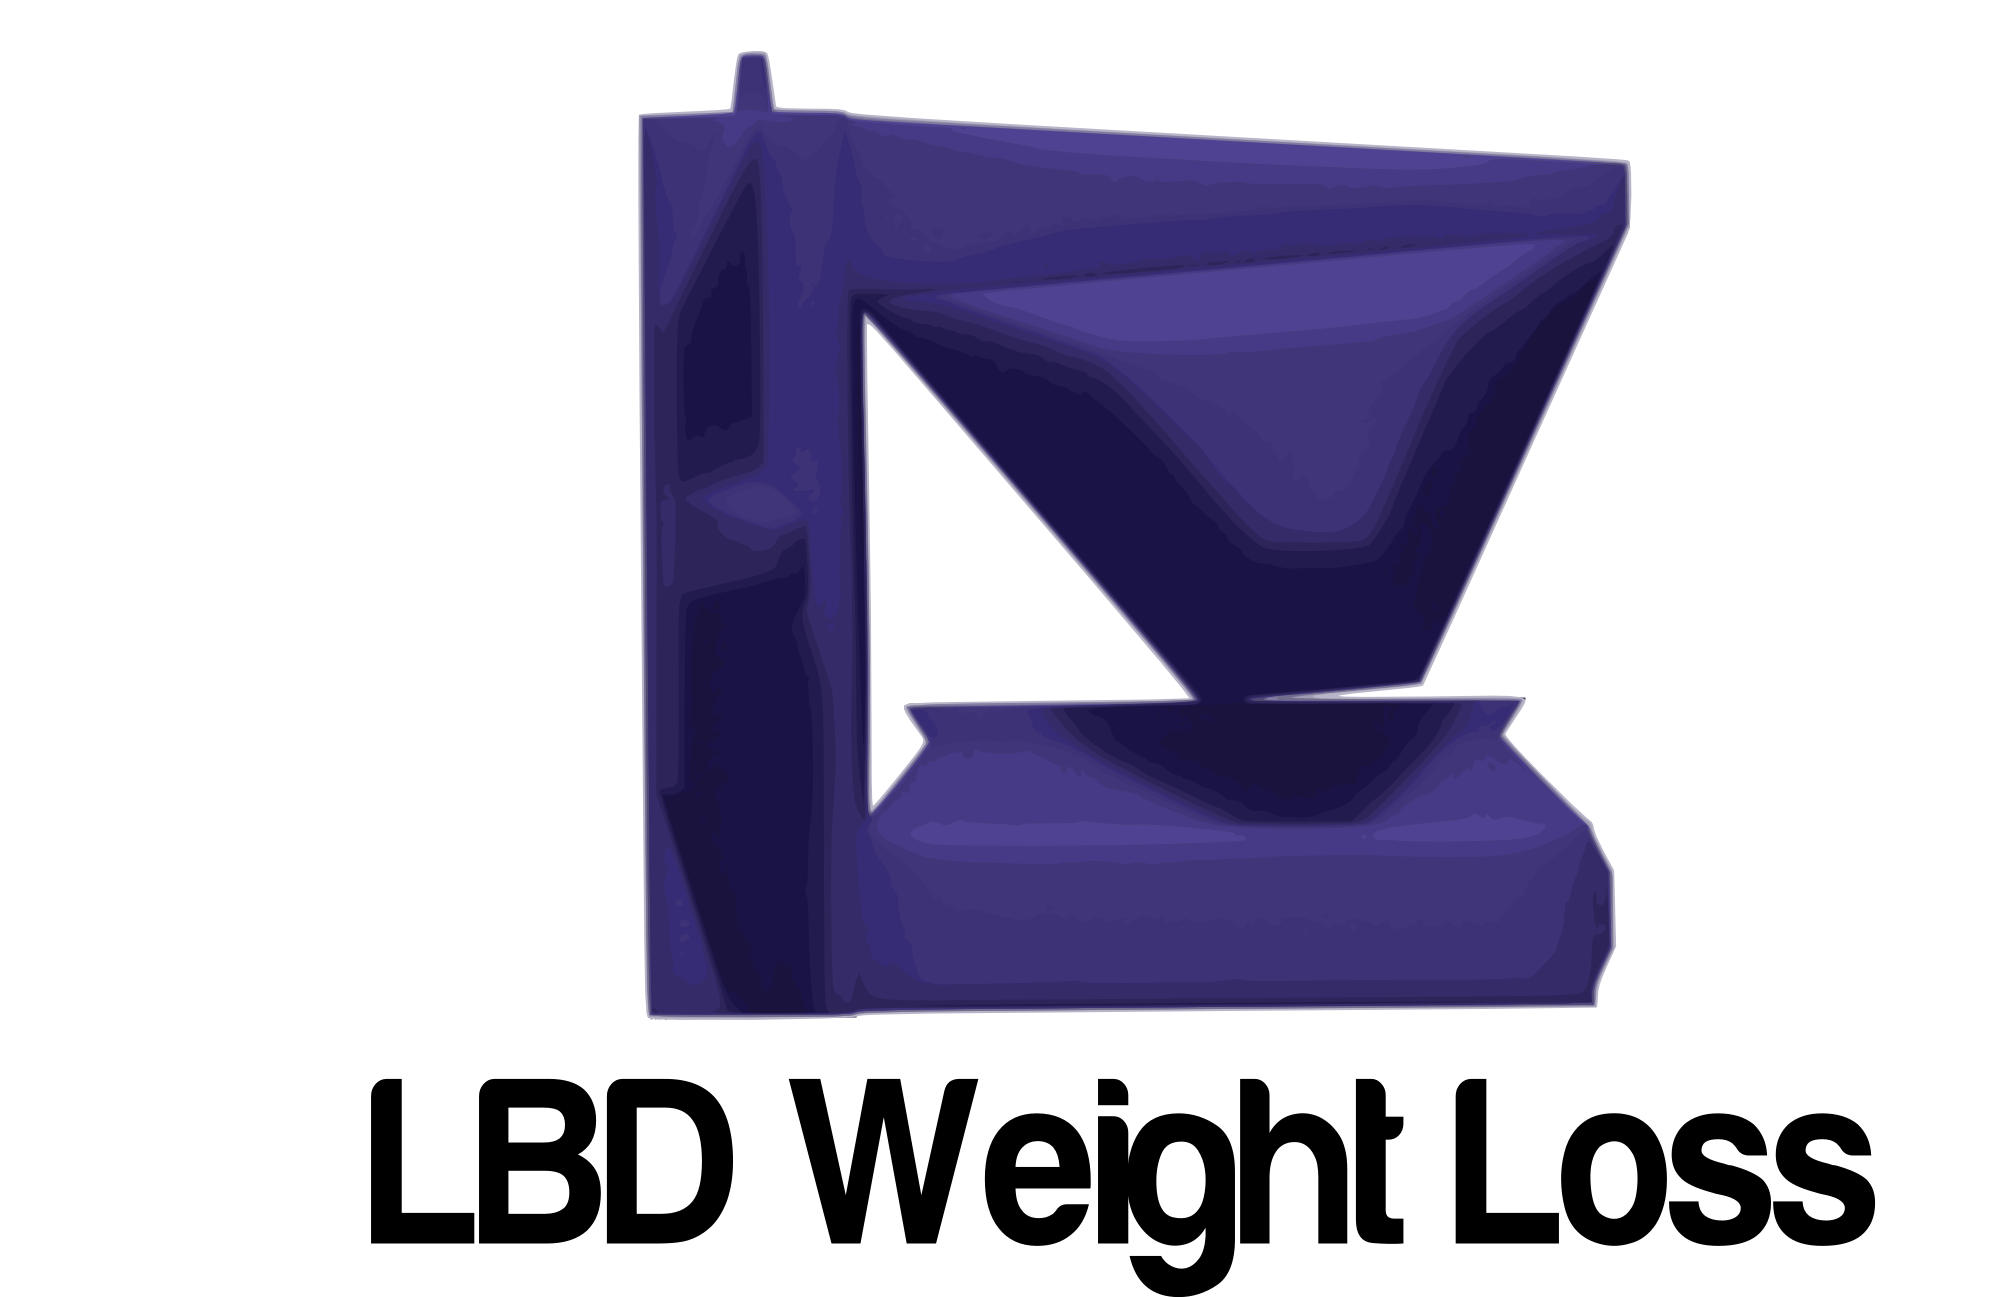 Logo Design by الملا سفيان - Entry No. 71 in the Logo Design Contest Imaginative Logo Design for LBD Weight Loss.